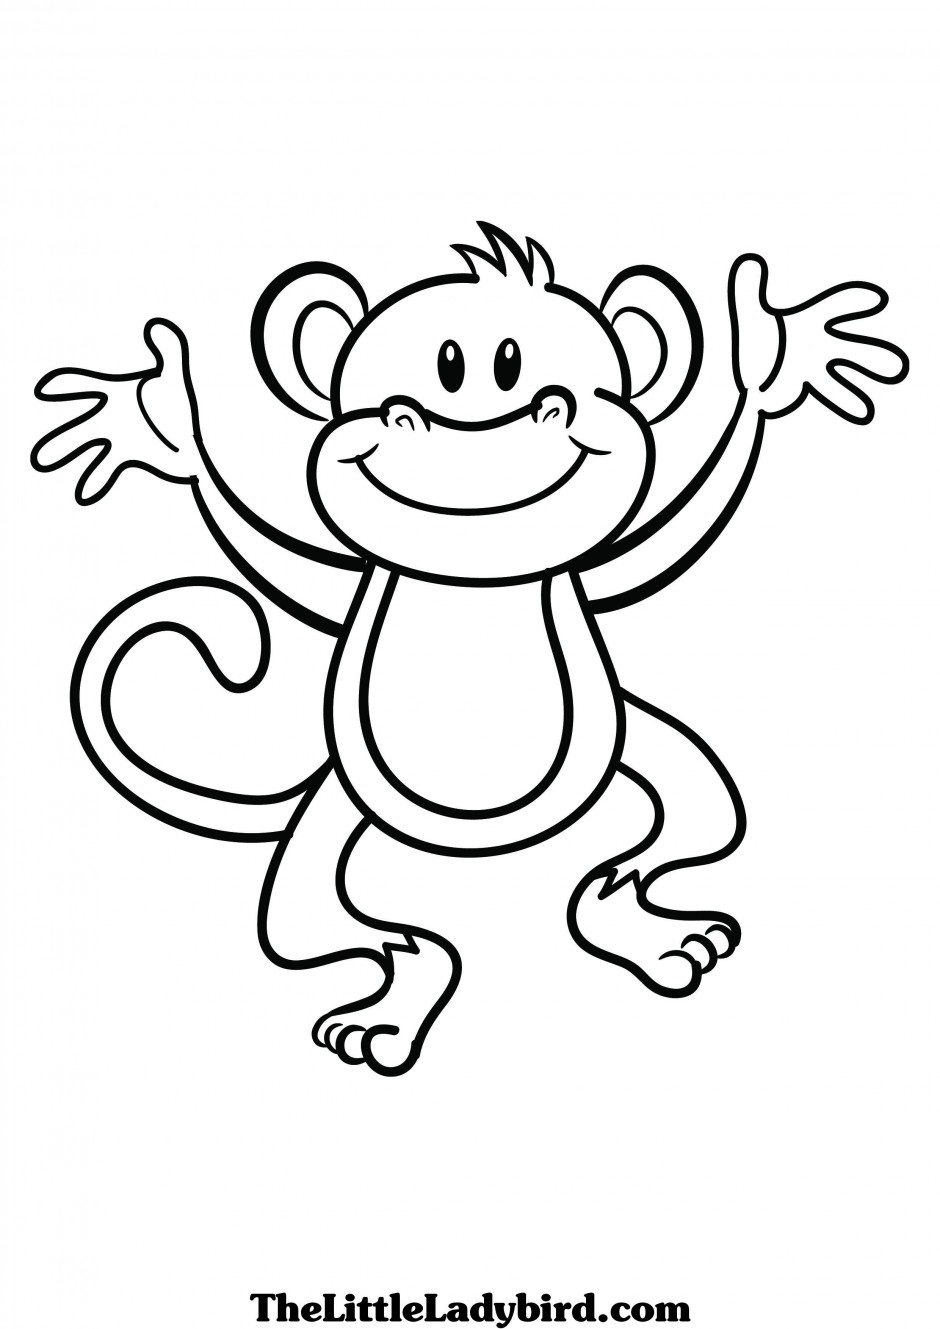 image Monkey black and white. Ape clipart outline